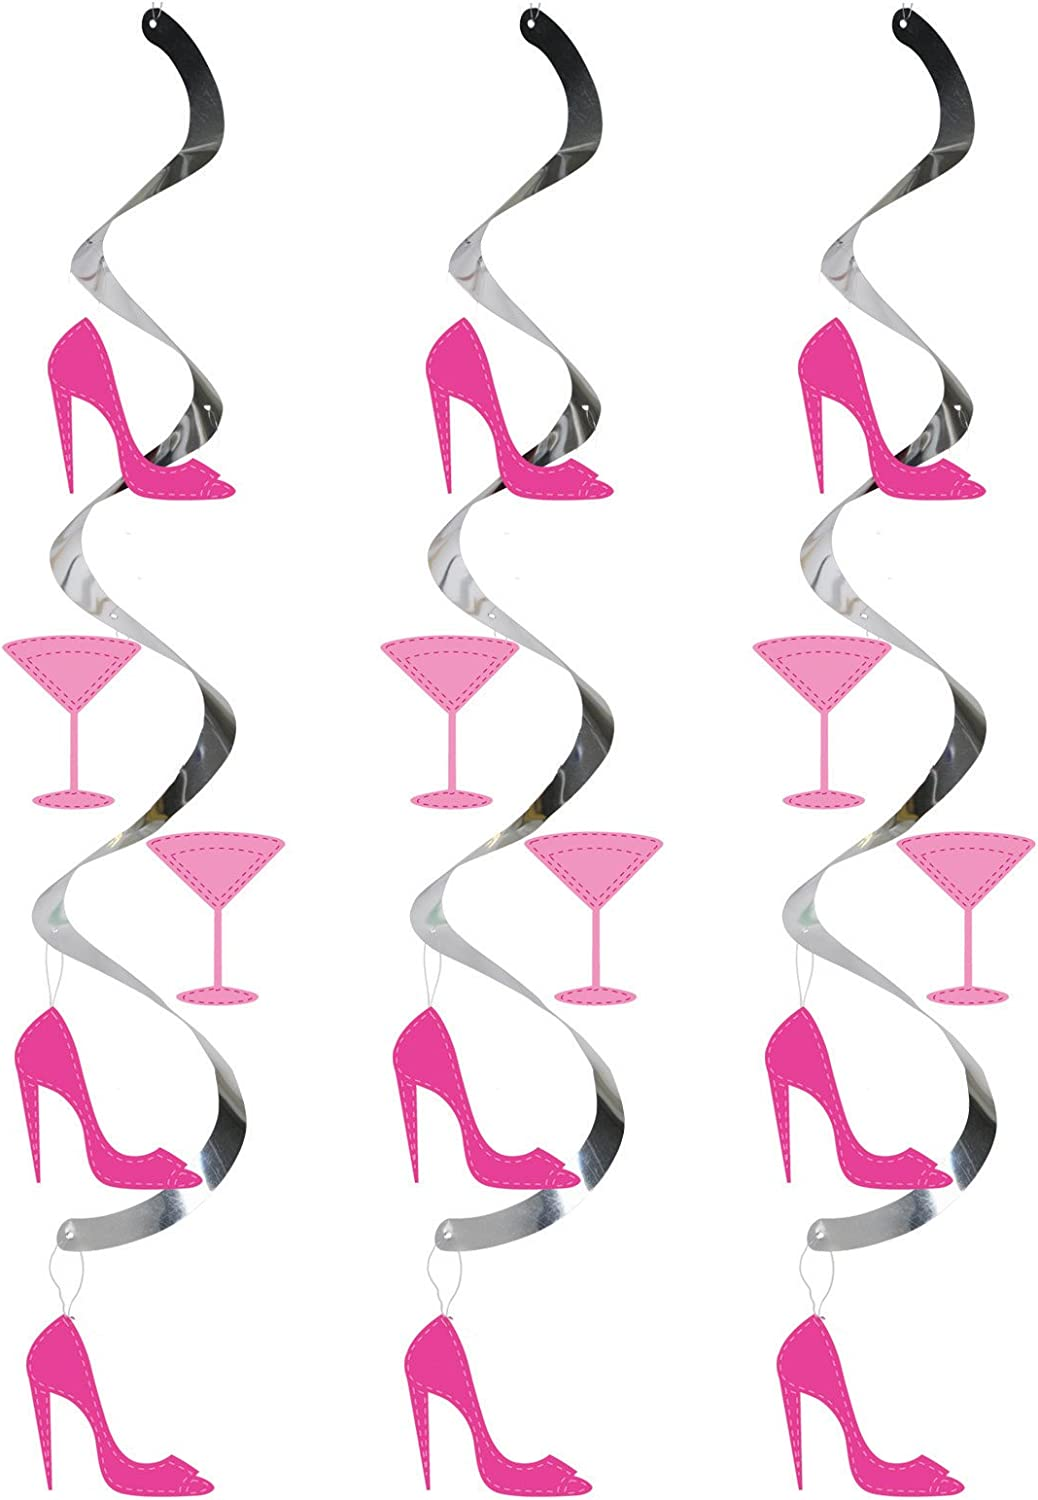 Martini Glass and High Heels Creative Converting 30-Count Dizzy Danglers Hanging Party D/écor